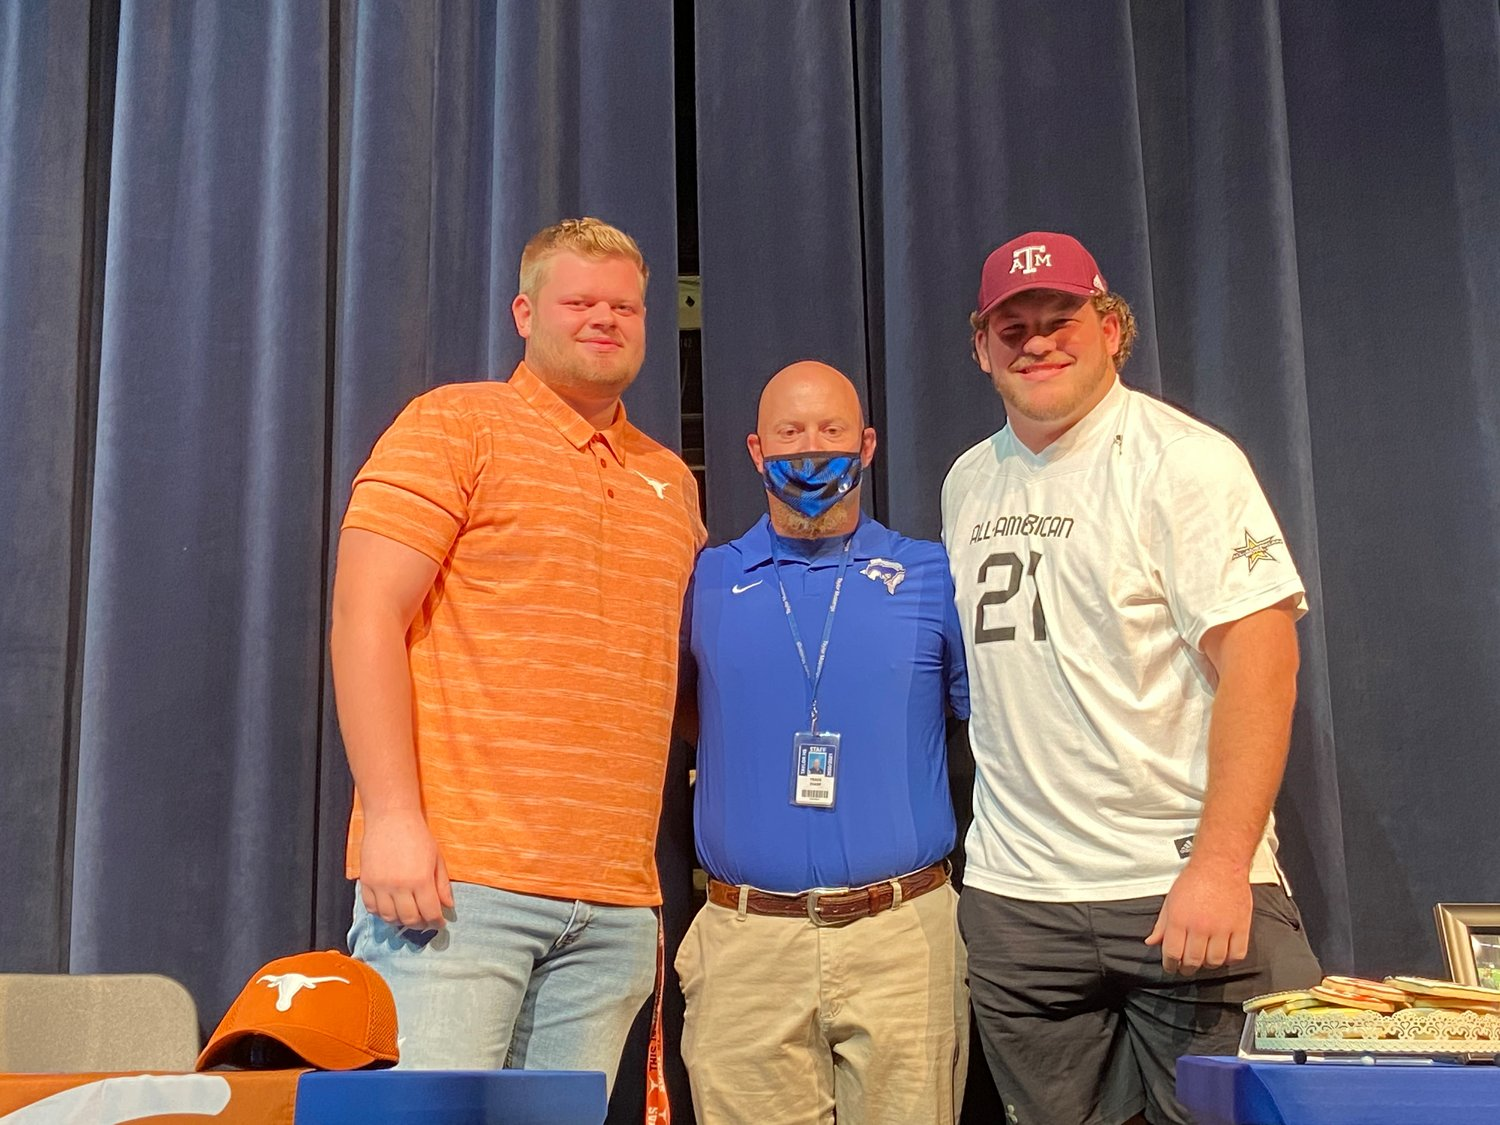 Taylor High senior offensive tackle and Texas signee Hayden Conner, left, and senior offensive guard and Texas A&M signee Bryce Foster, right, pose for a photo with offensive line coach Travis Sharp during their signing ceremony Friday at the performing arts center at Taylor High.